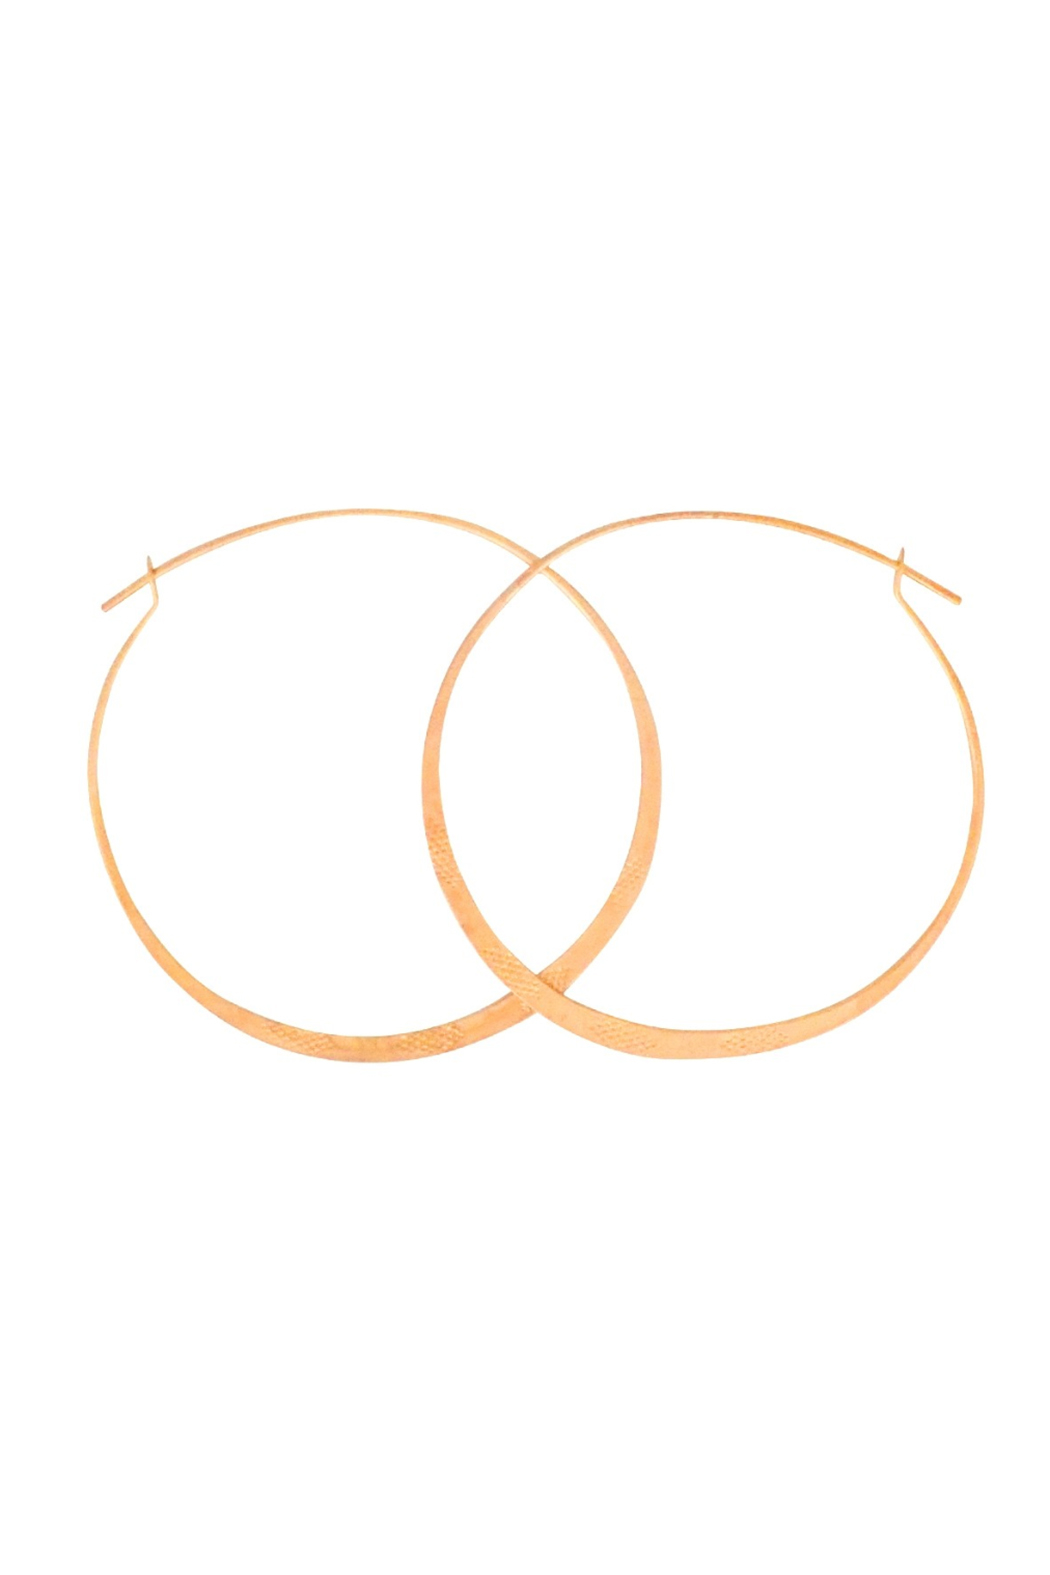 Bronwen Standard Hoop Earrings 1.75 Gold - Main Image